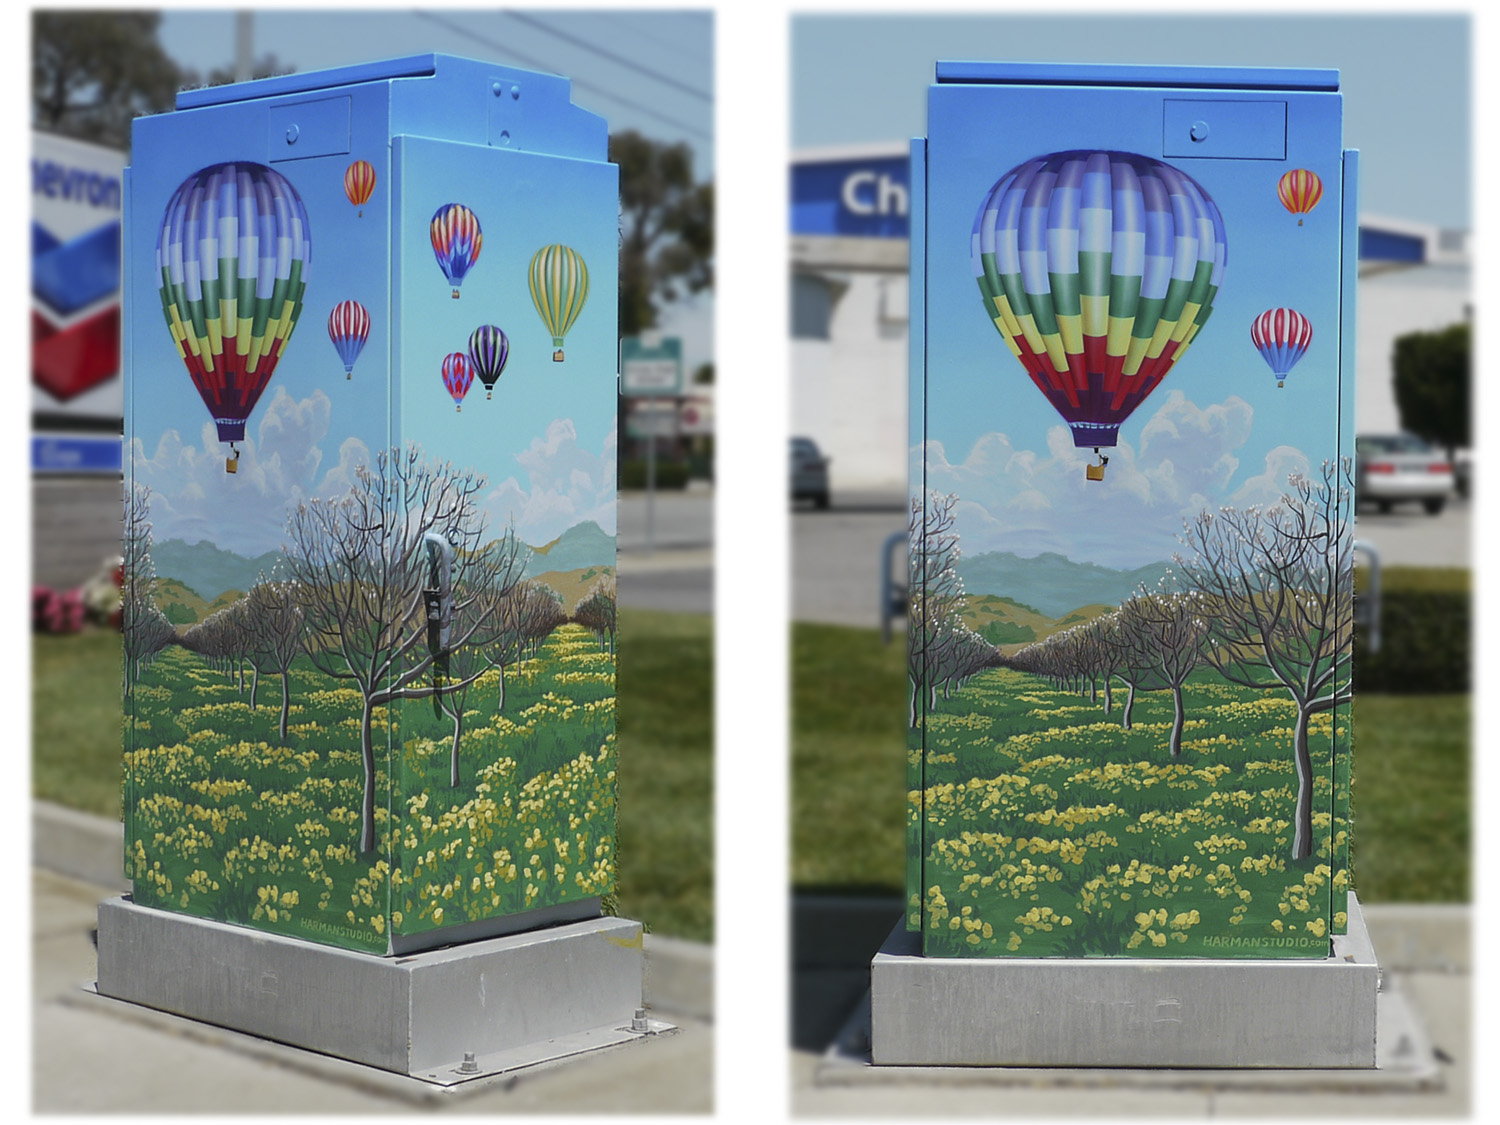 The city of Gilroy, CA chose me to paint a series of nature murals on traffic signal boxes. Hot air balloons are often seen in the Central Valley.